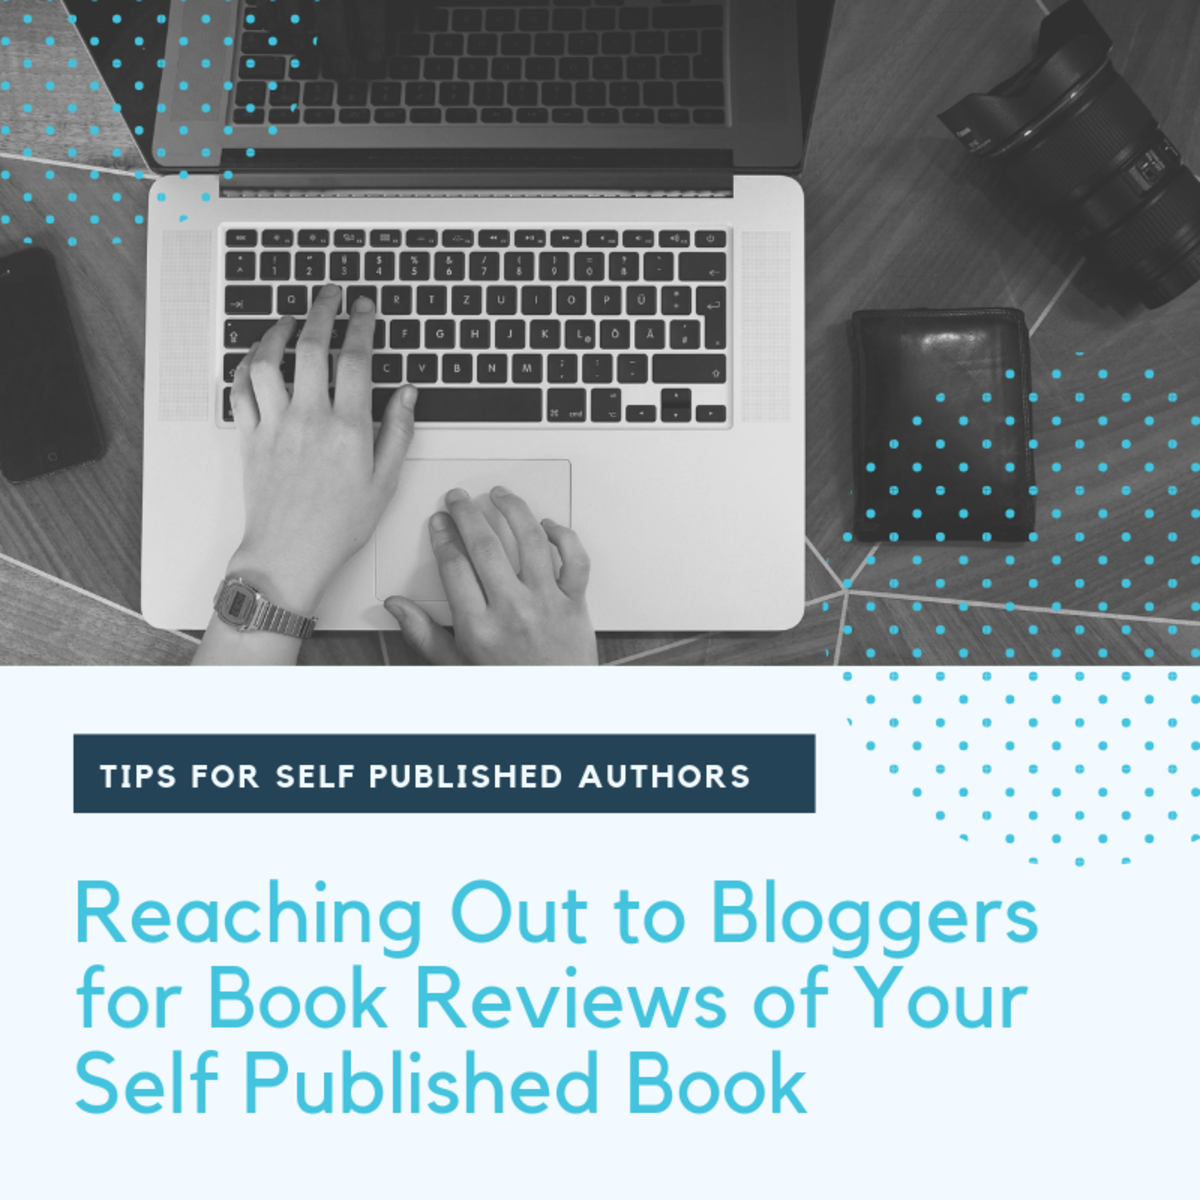 Reaching out to Bloggers for Book Reviews of Your Self Published Book